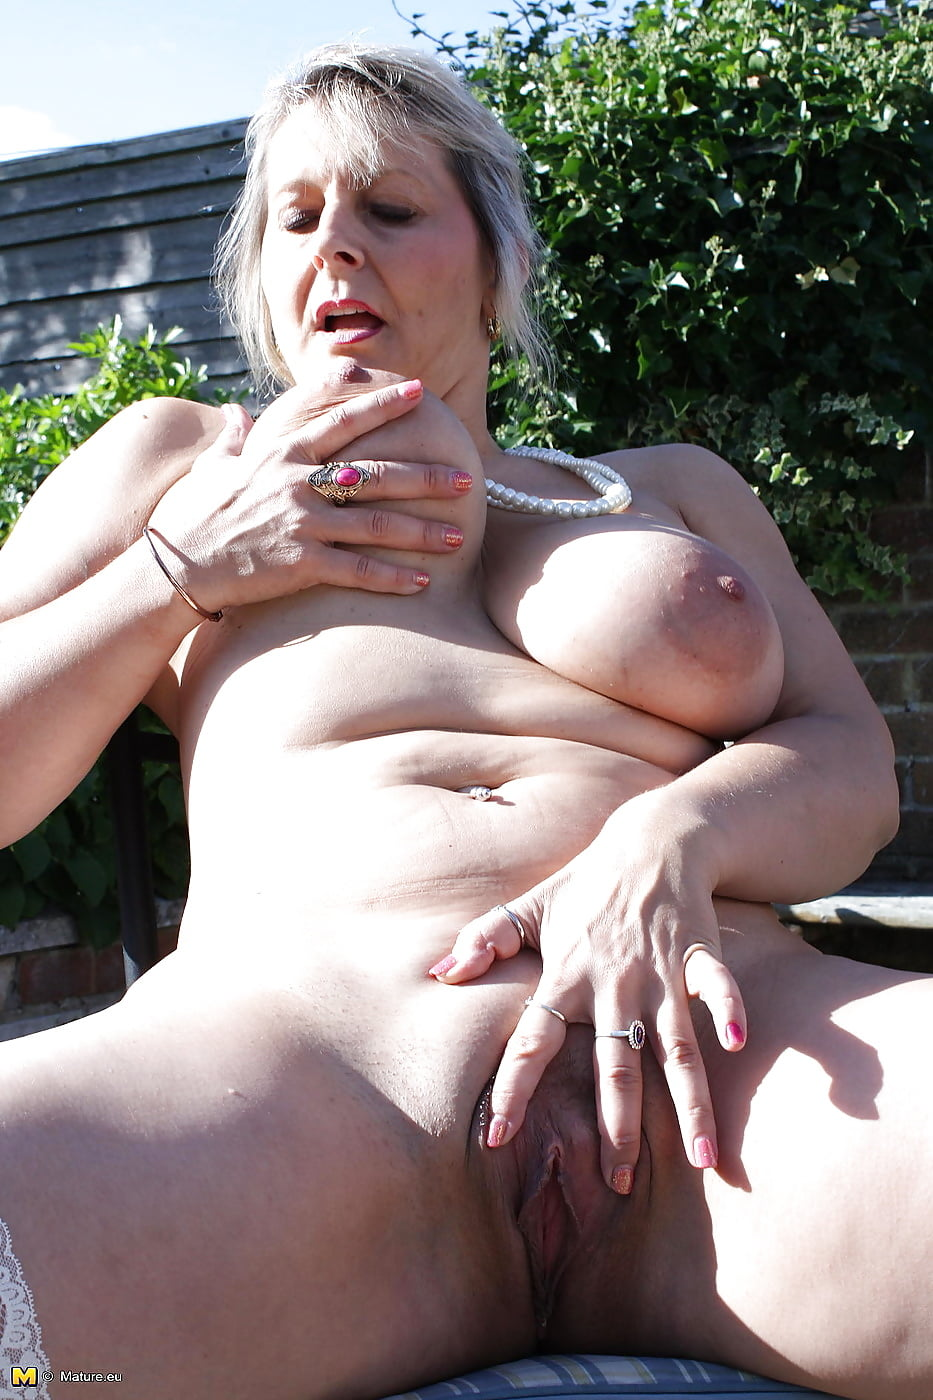 Free pictures of older mature women-1256